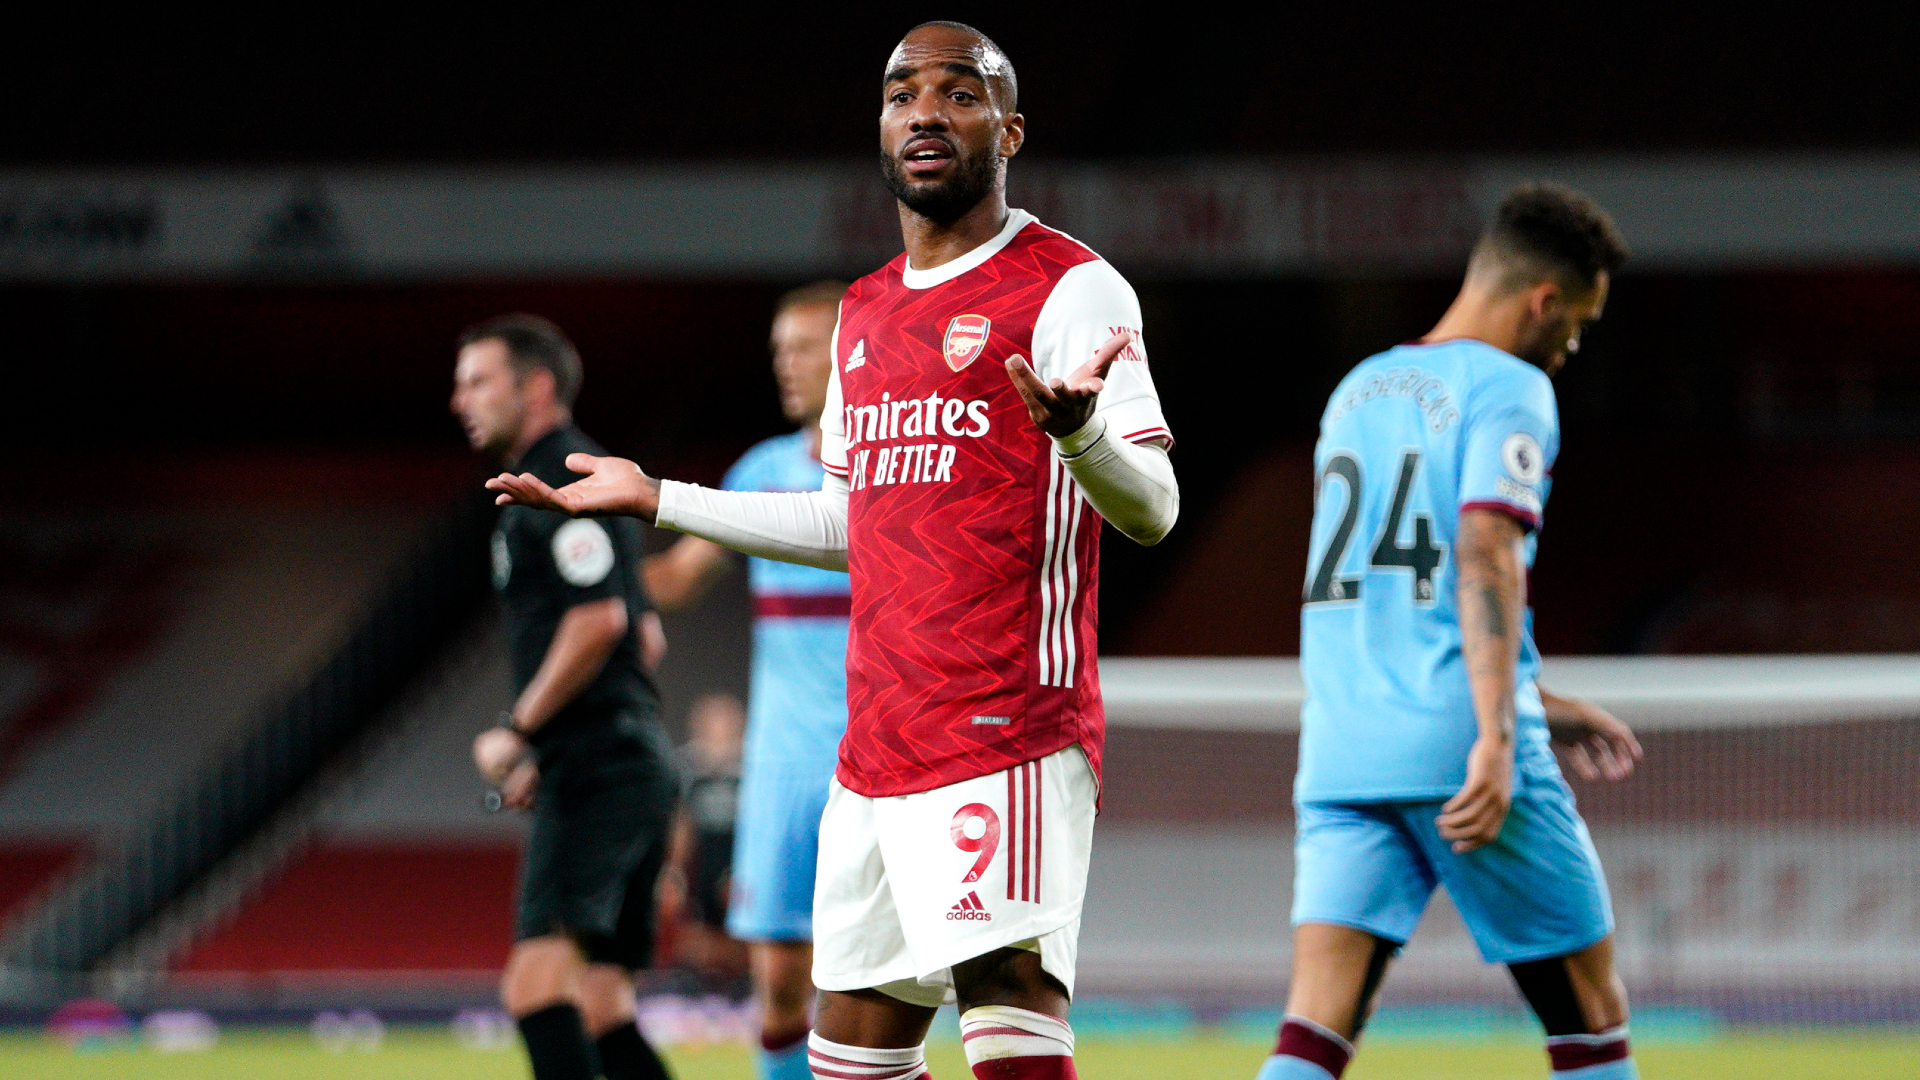 Arsenal not in contract talks with Lacazette – Arteta